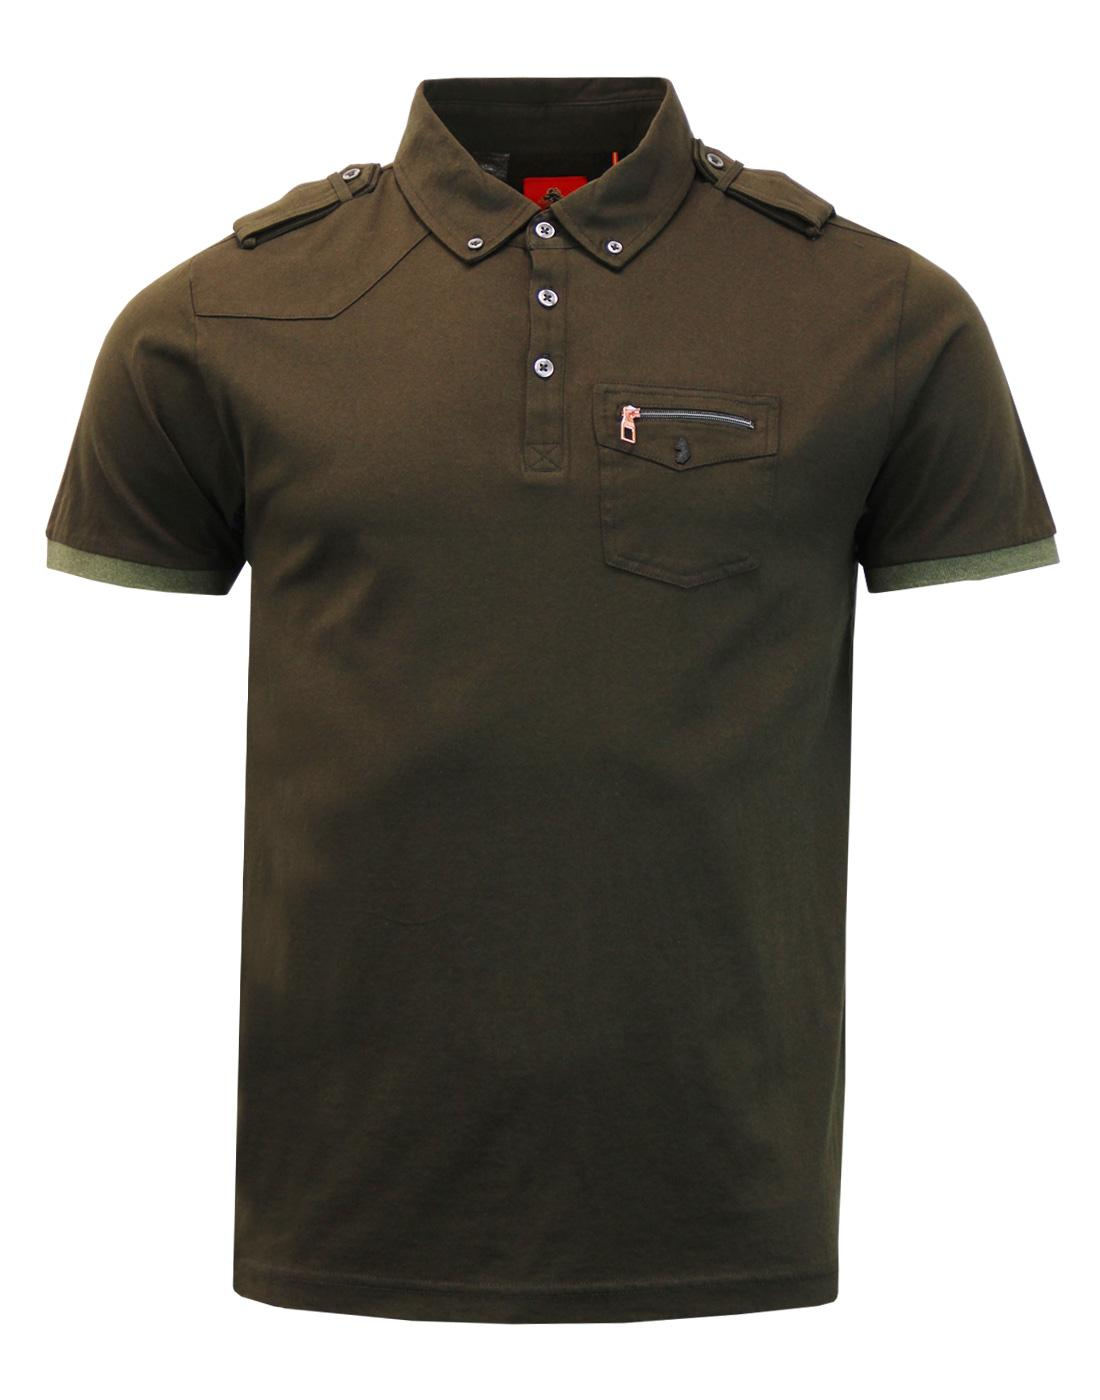 Privates LUKE 1977 Retro Mod Military Polo Top (K)